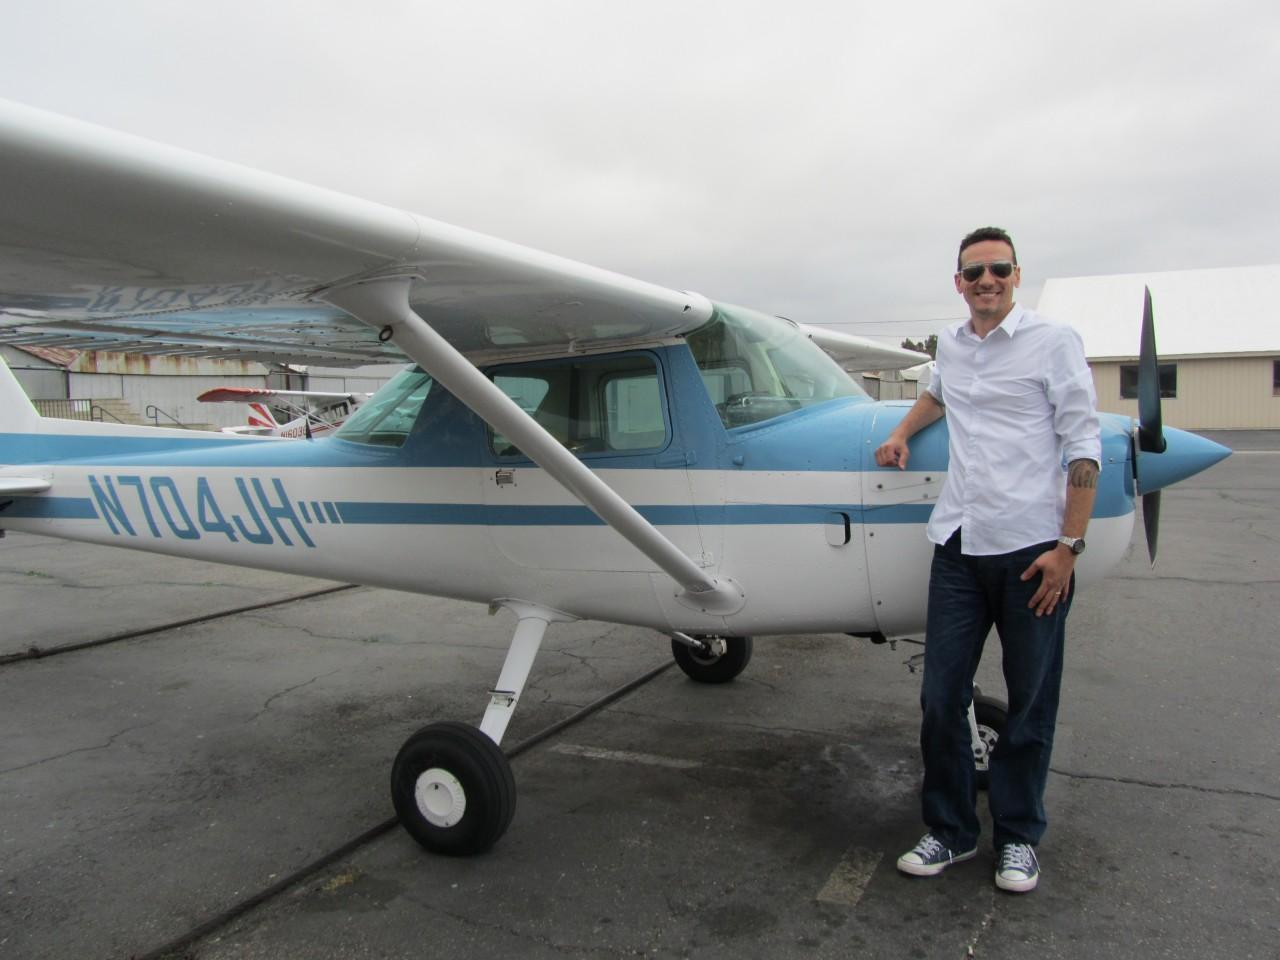 First Solo - Jason Stack